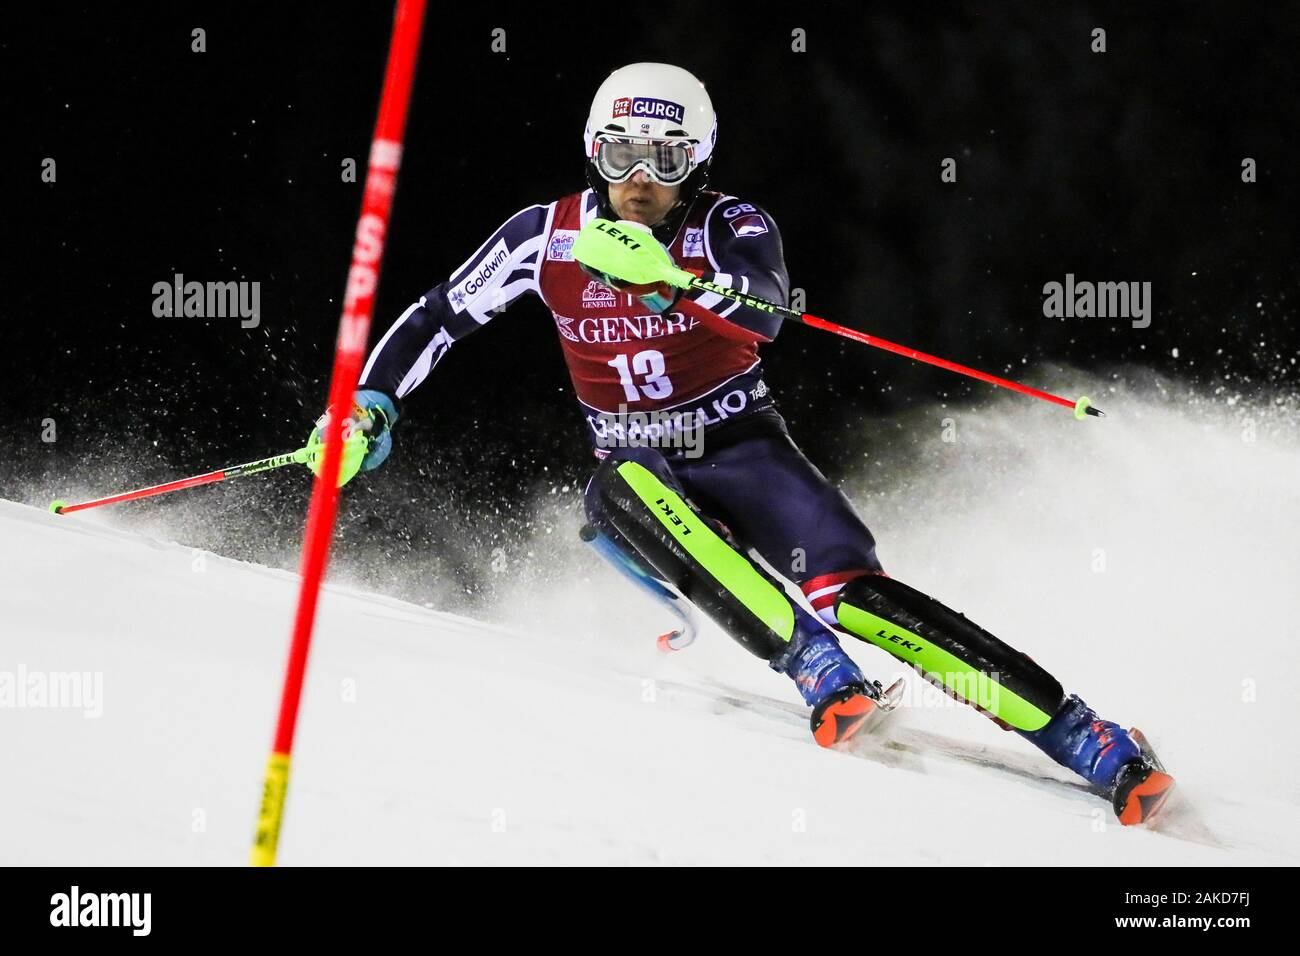 Madonna di Campiglio, Italy, 08 Jan 2020, ryding dave (gbr) 8th classified during FIS AUDI World Cup - Slalom Men - Ski - Credit: LPS/Sergio Bisi/Alamy Live News Stock Photo